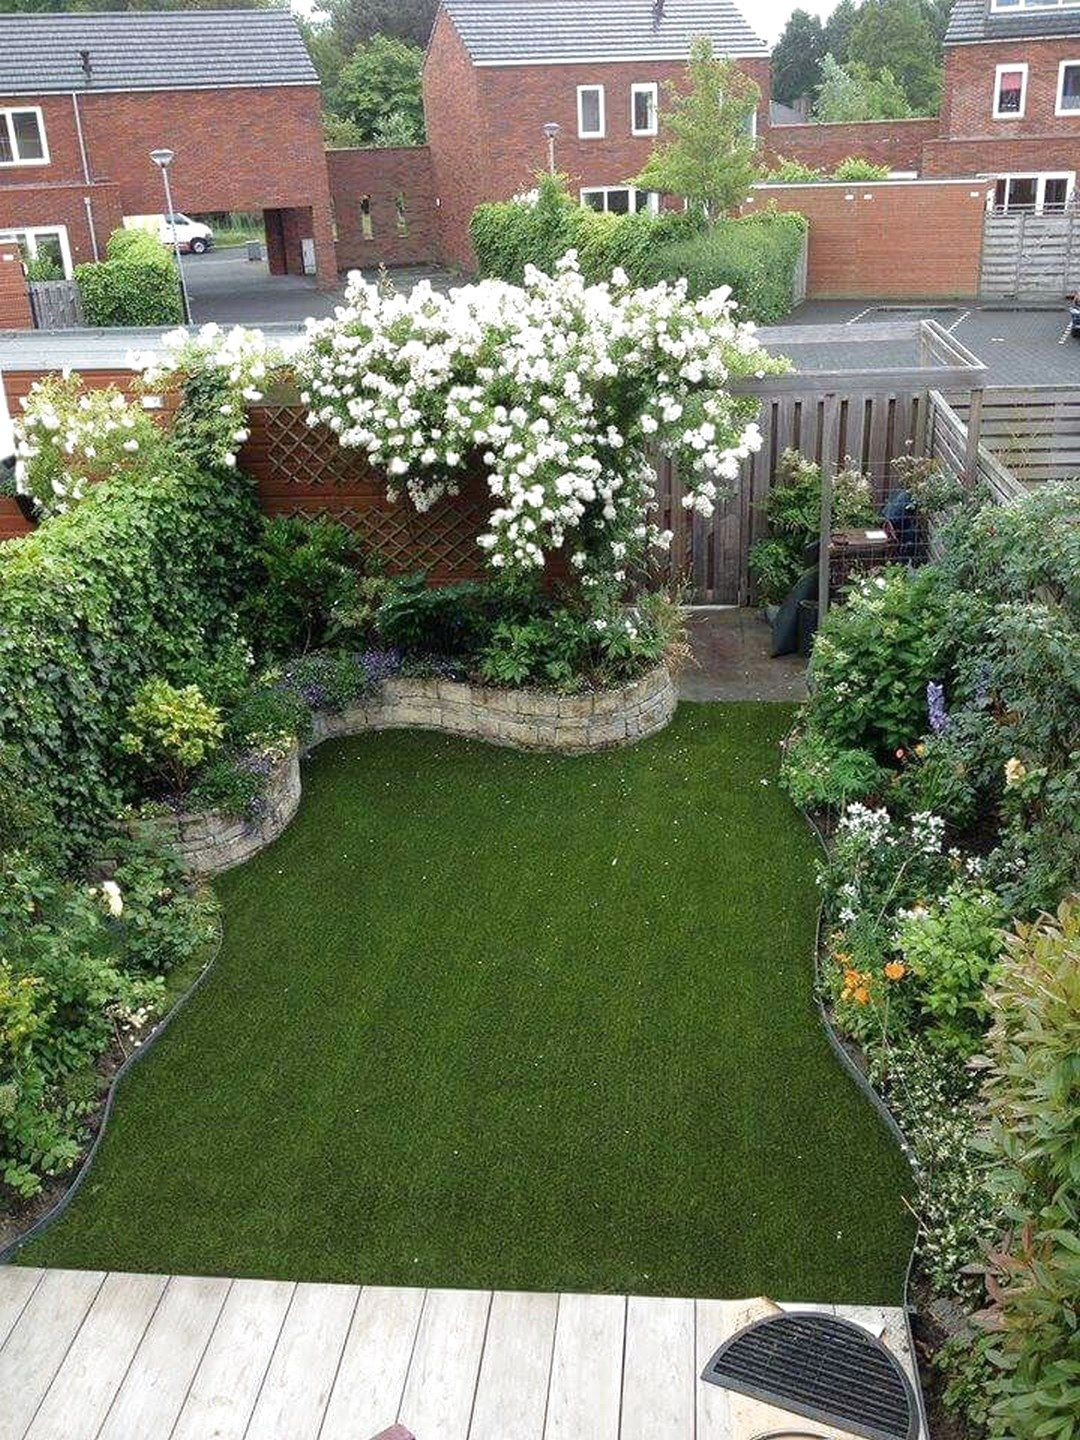 Photo of ✔48 Best Small Yard Landscaping & Flower Garden Design Ideas #SmallYardLandscaping     #FlowerGarden